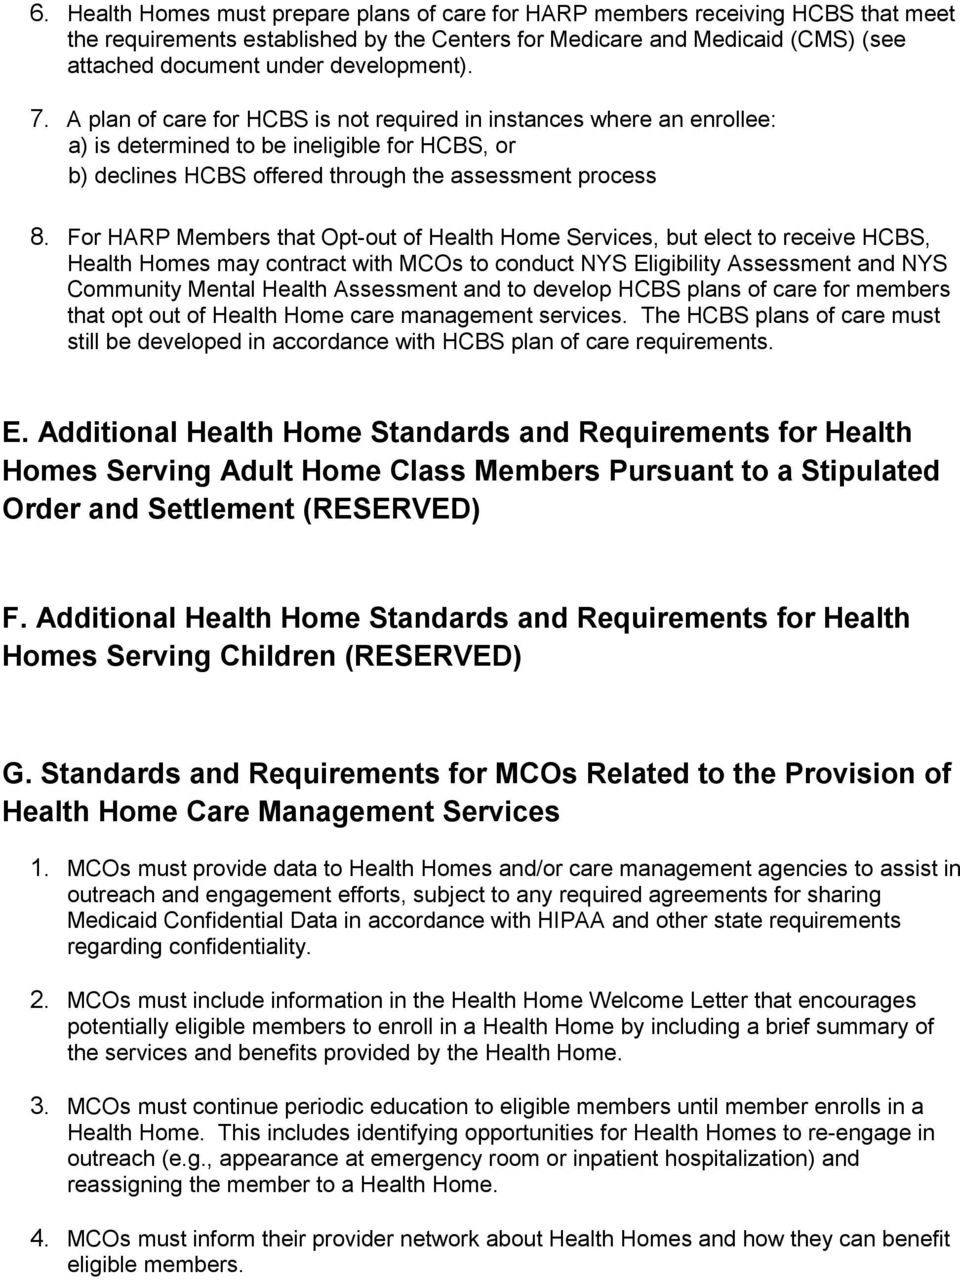 For HARP Members that Opt-out of Health Home Services, but elect to receive HCBS, Health Homes may contract with MCOs to conduct NYS Eligibility Assessment and NYS Community Mental Health Assessment